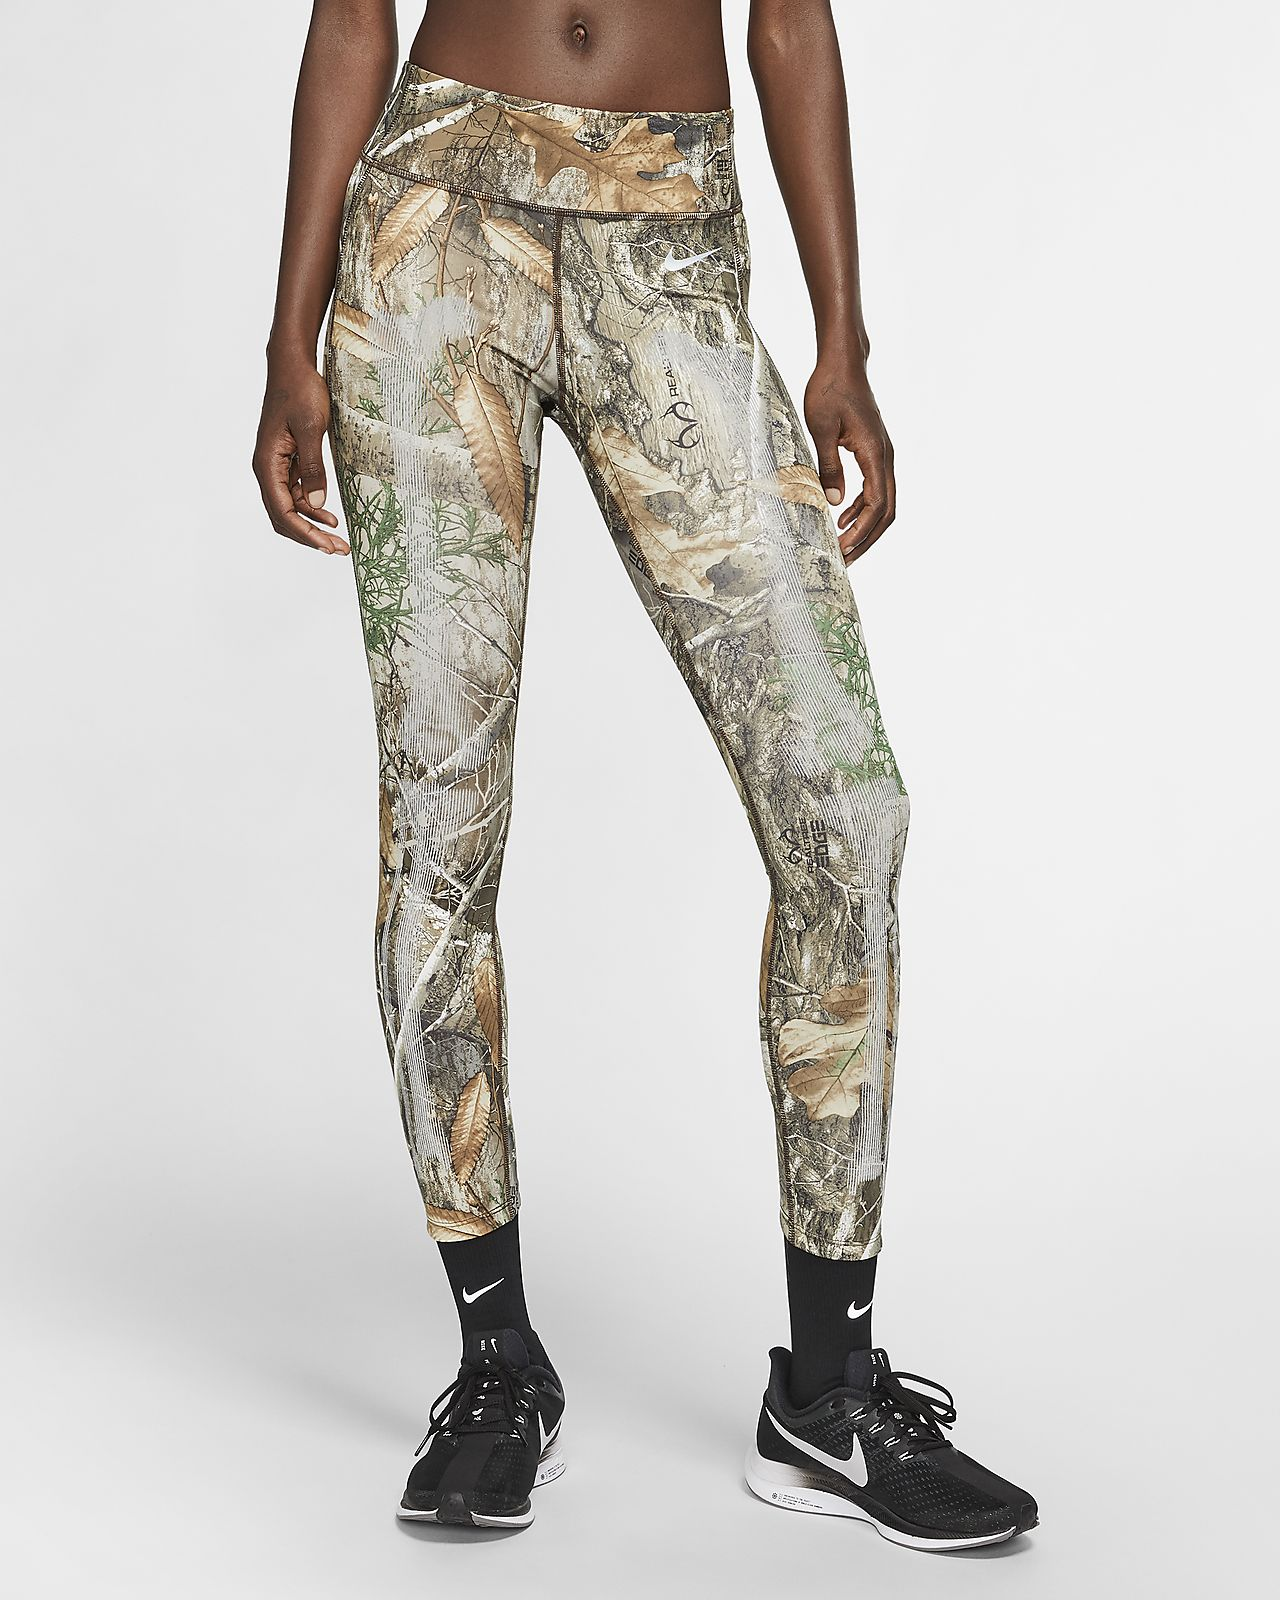 Nike Damen-Tights mit Skelettgrafik